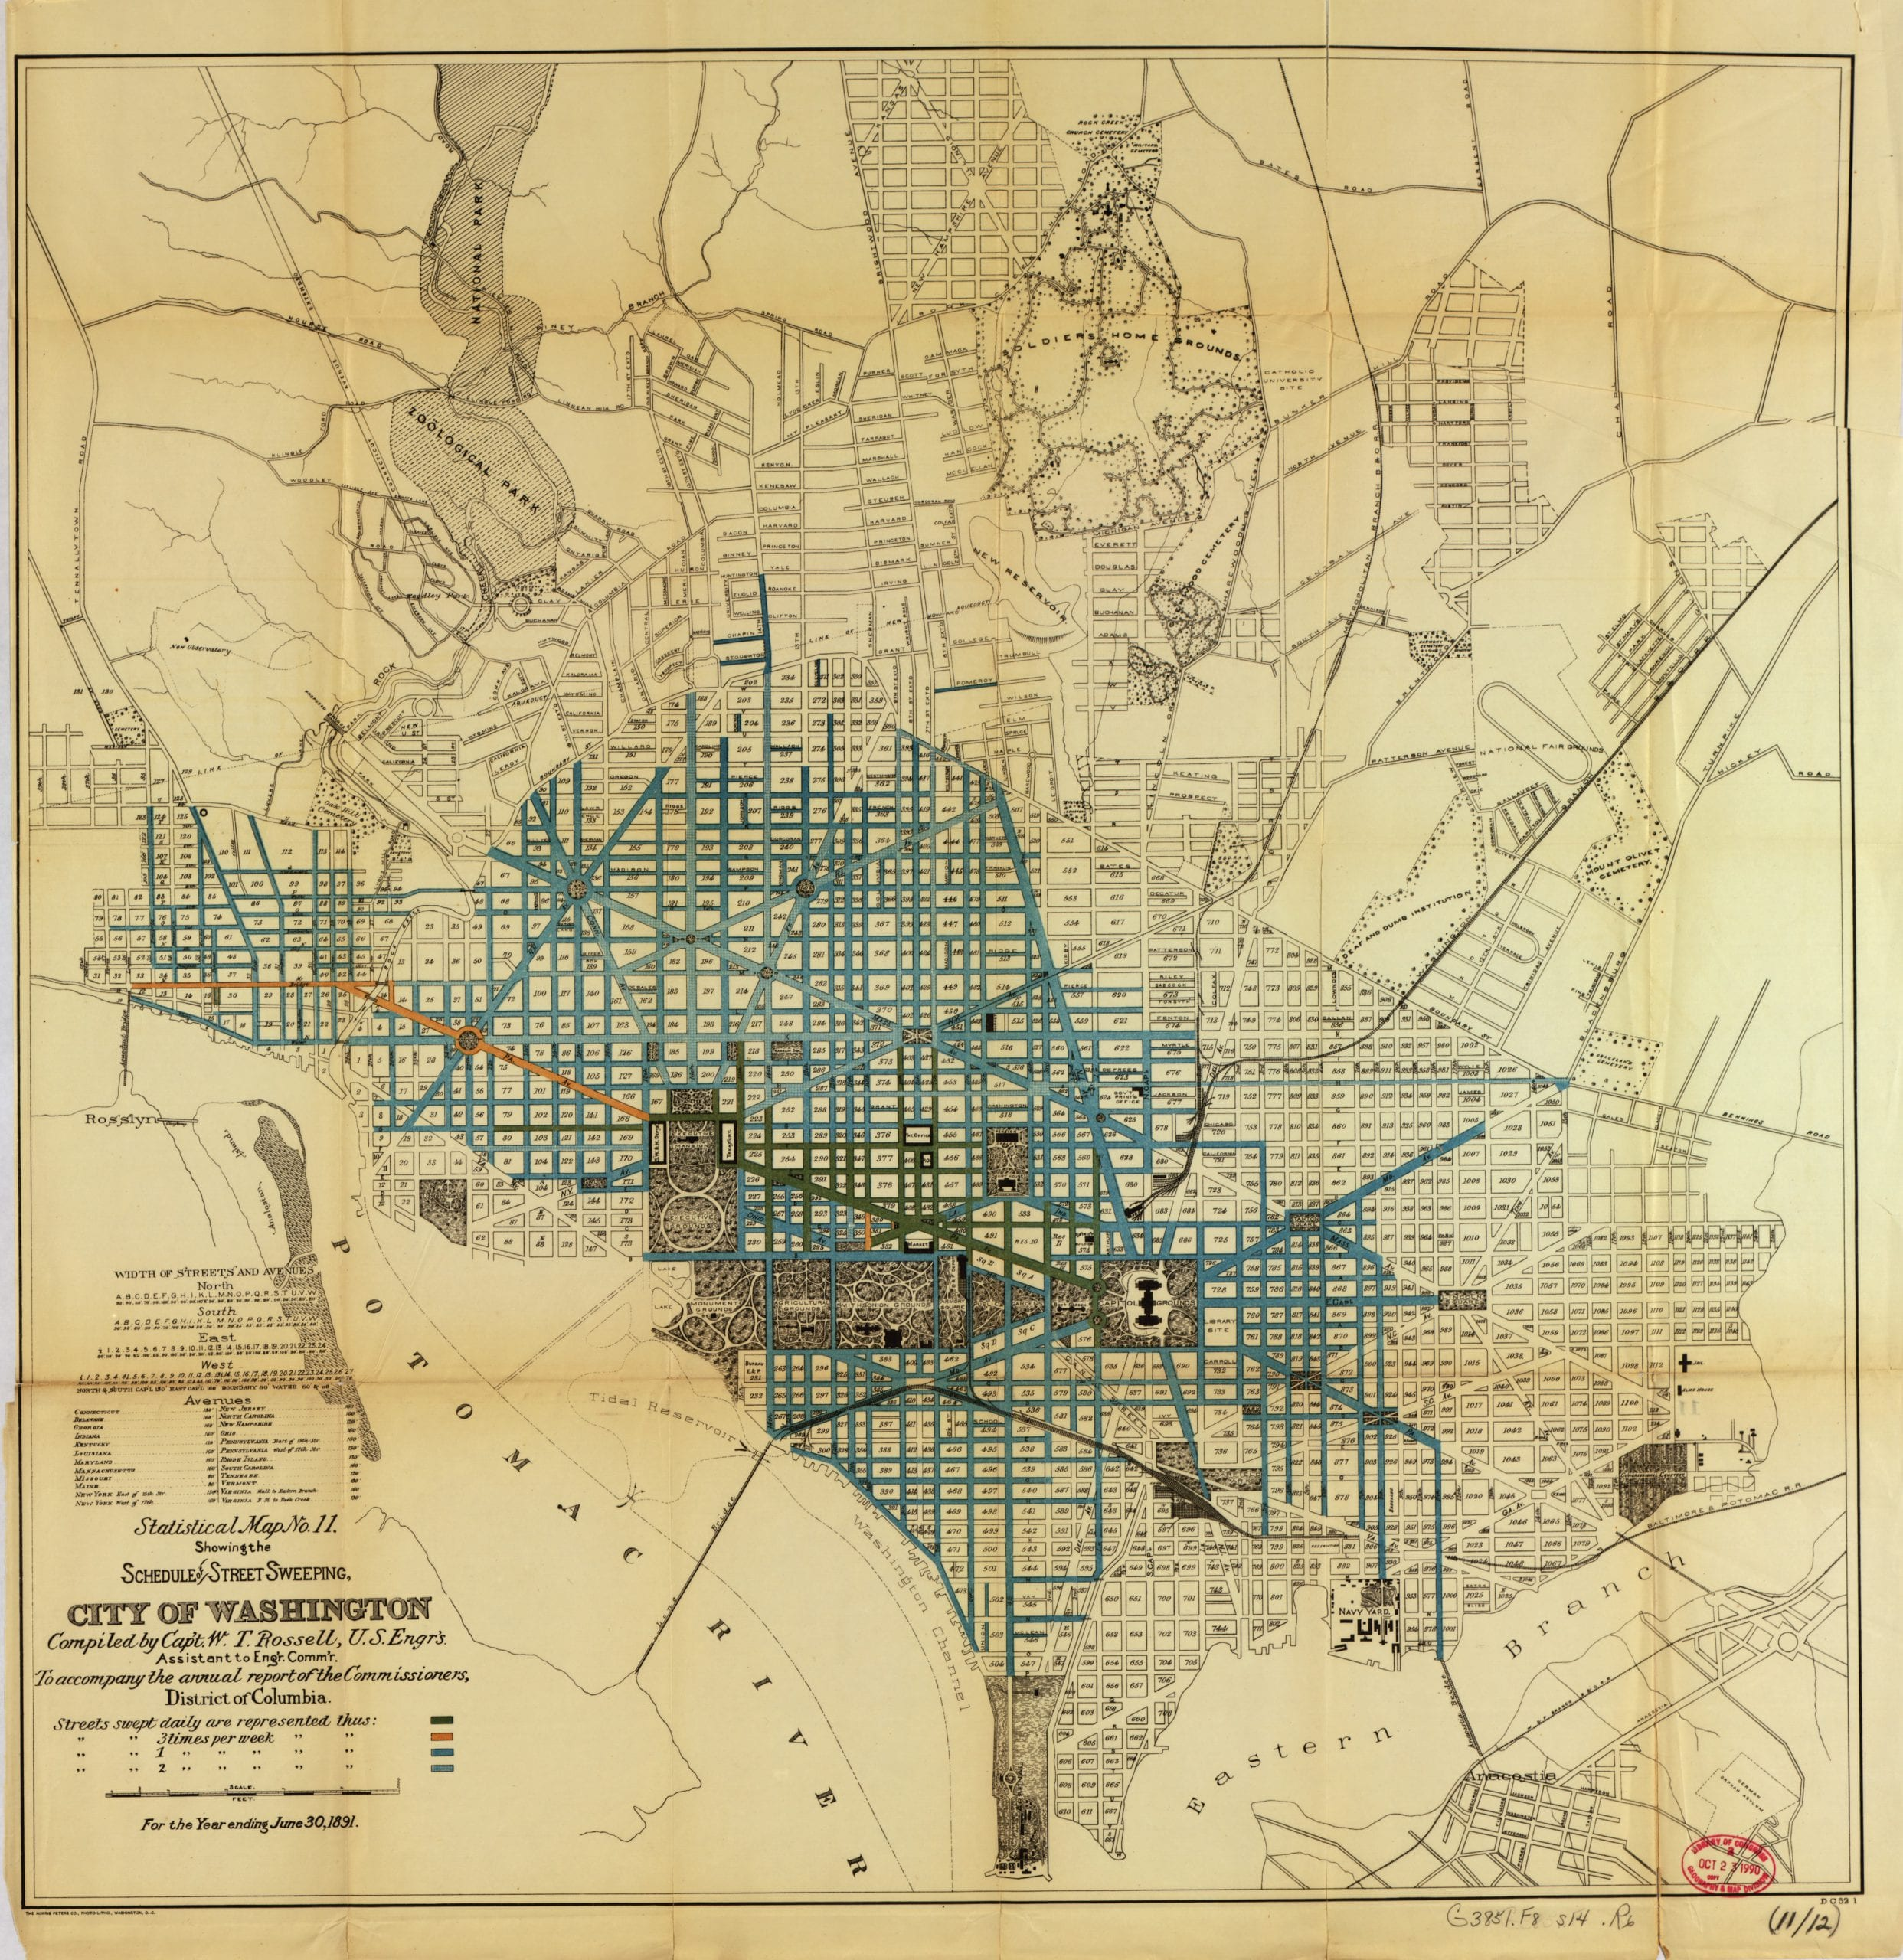 1891 street sweeping map of DC